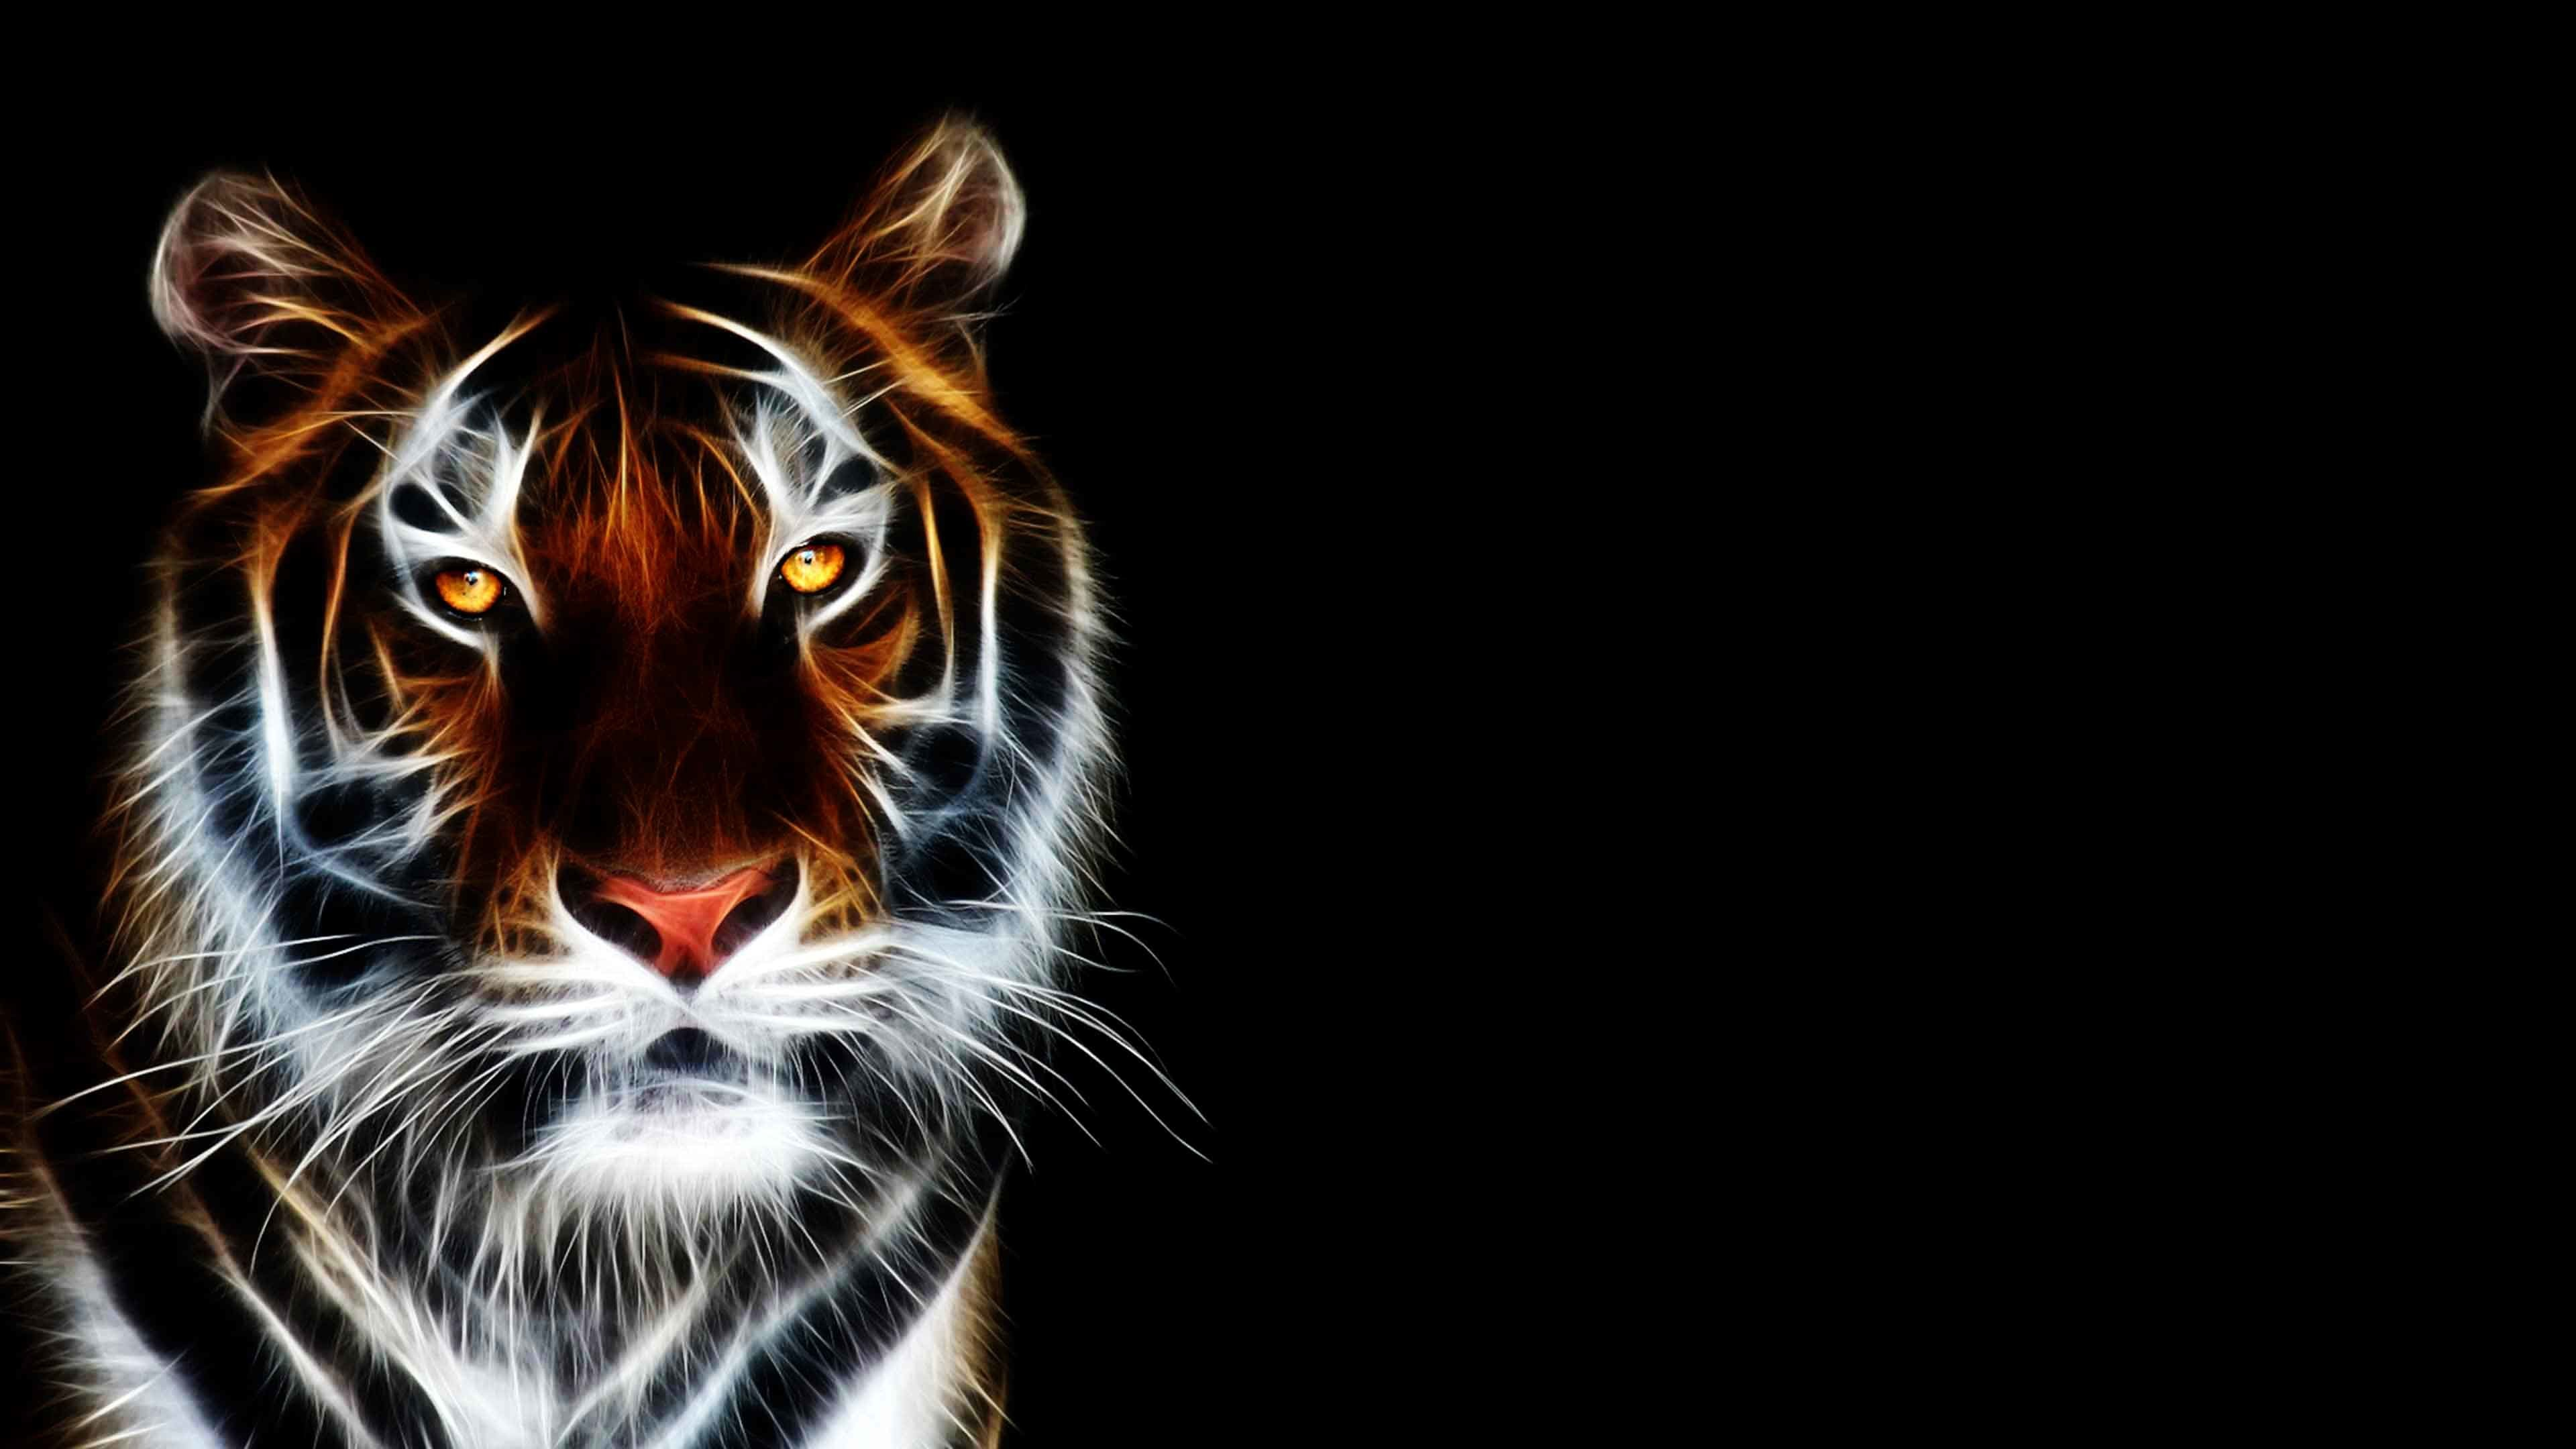 3840x2160 - Animated Tiger 21